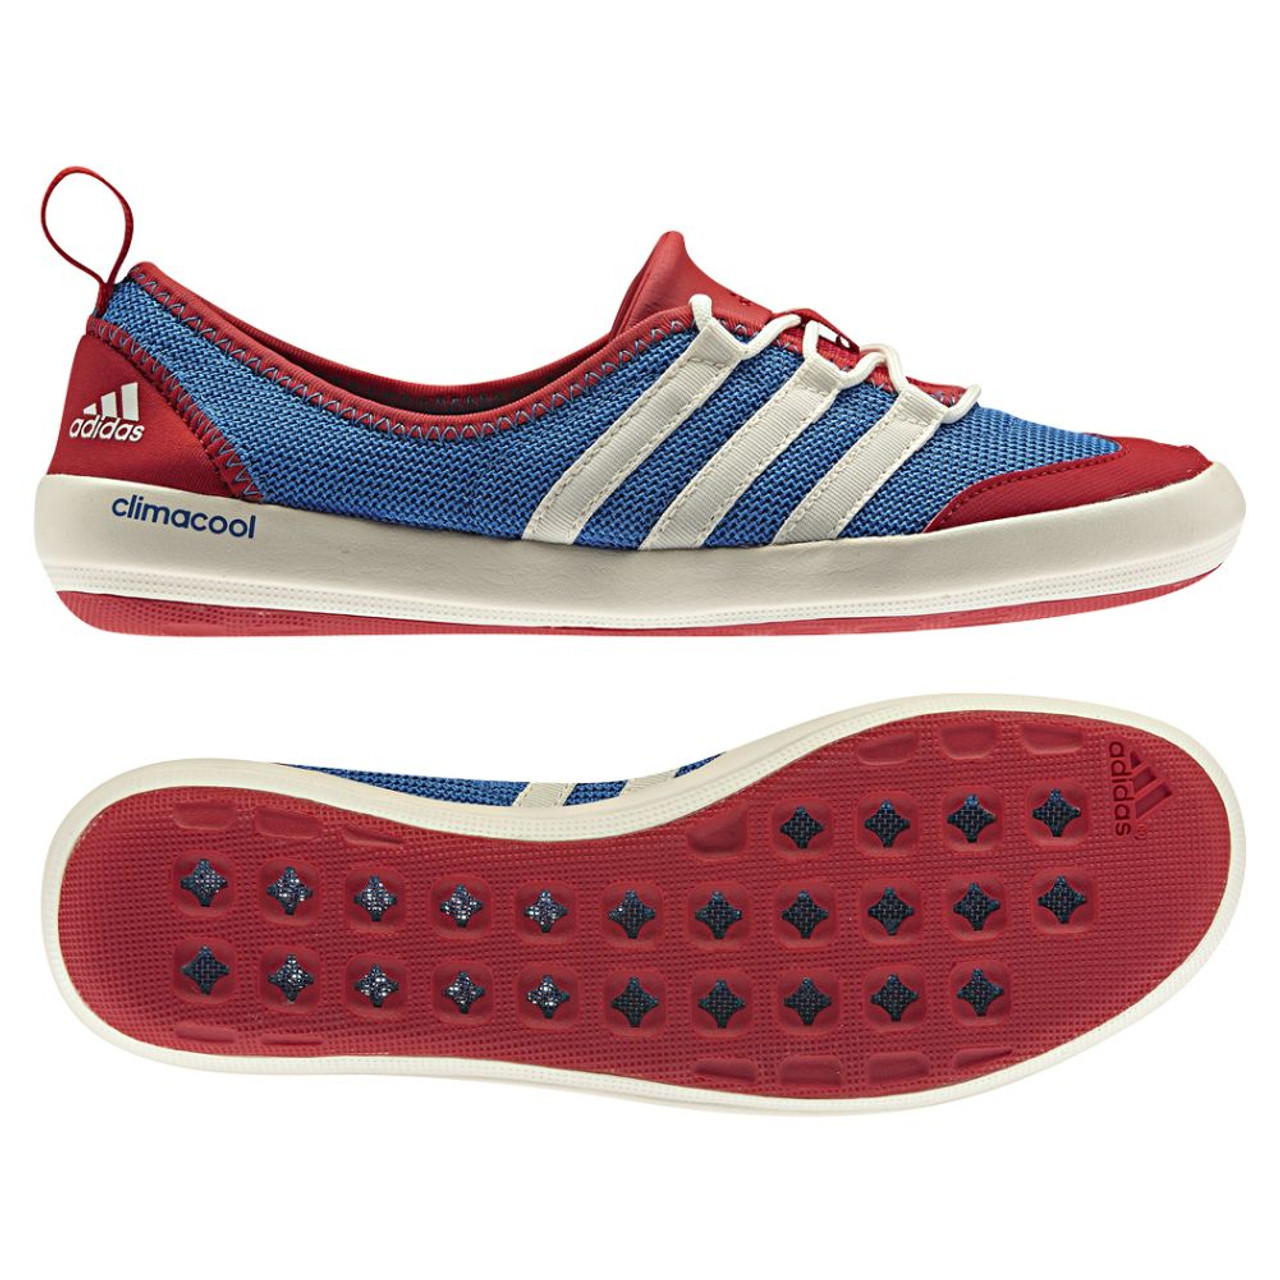 new concept ed060 34044 Adidas Climacool Boat Sleek Red/Wht/Blue Ladies Outdoor Shoes